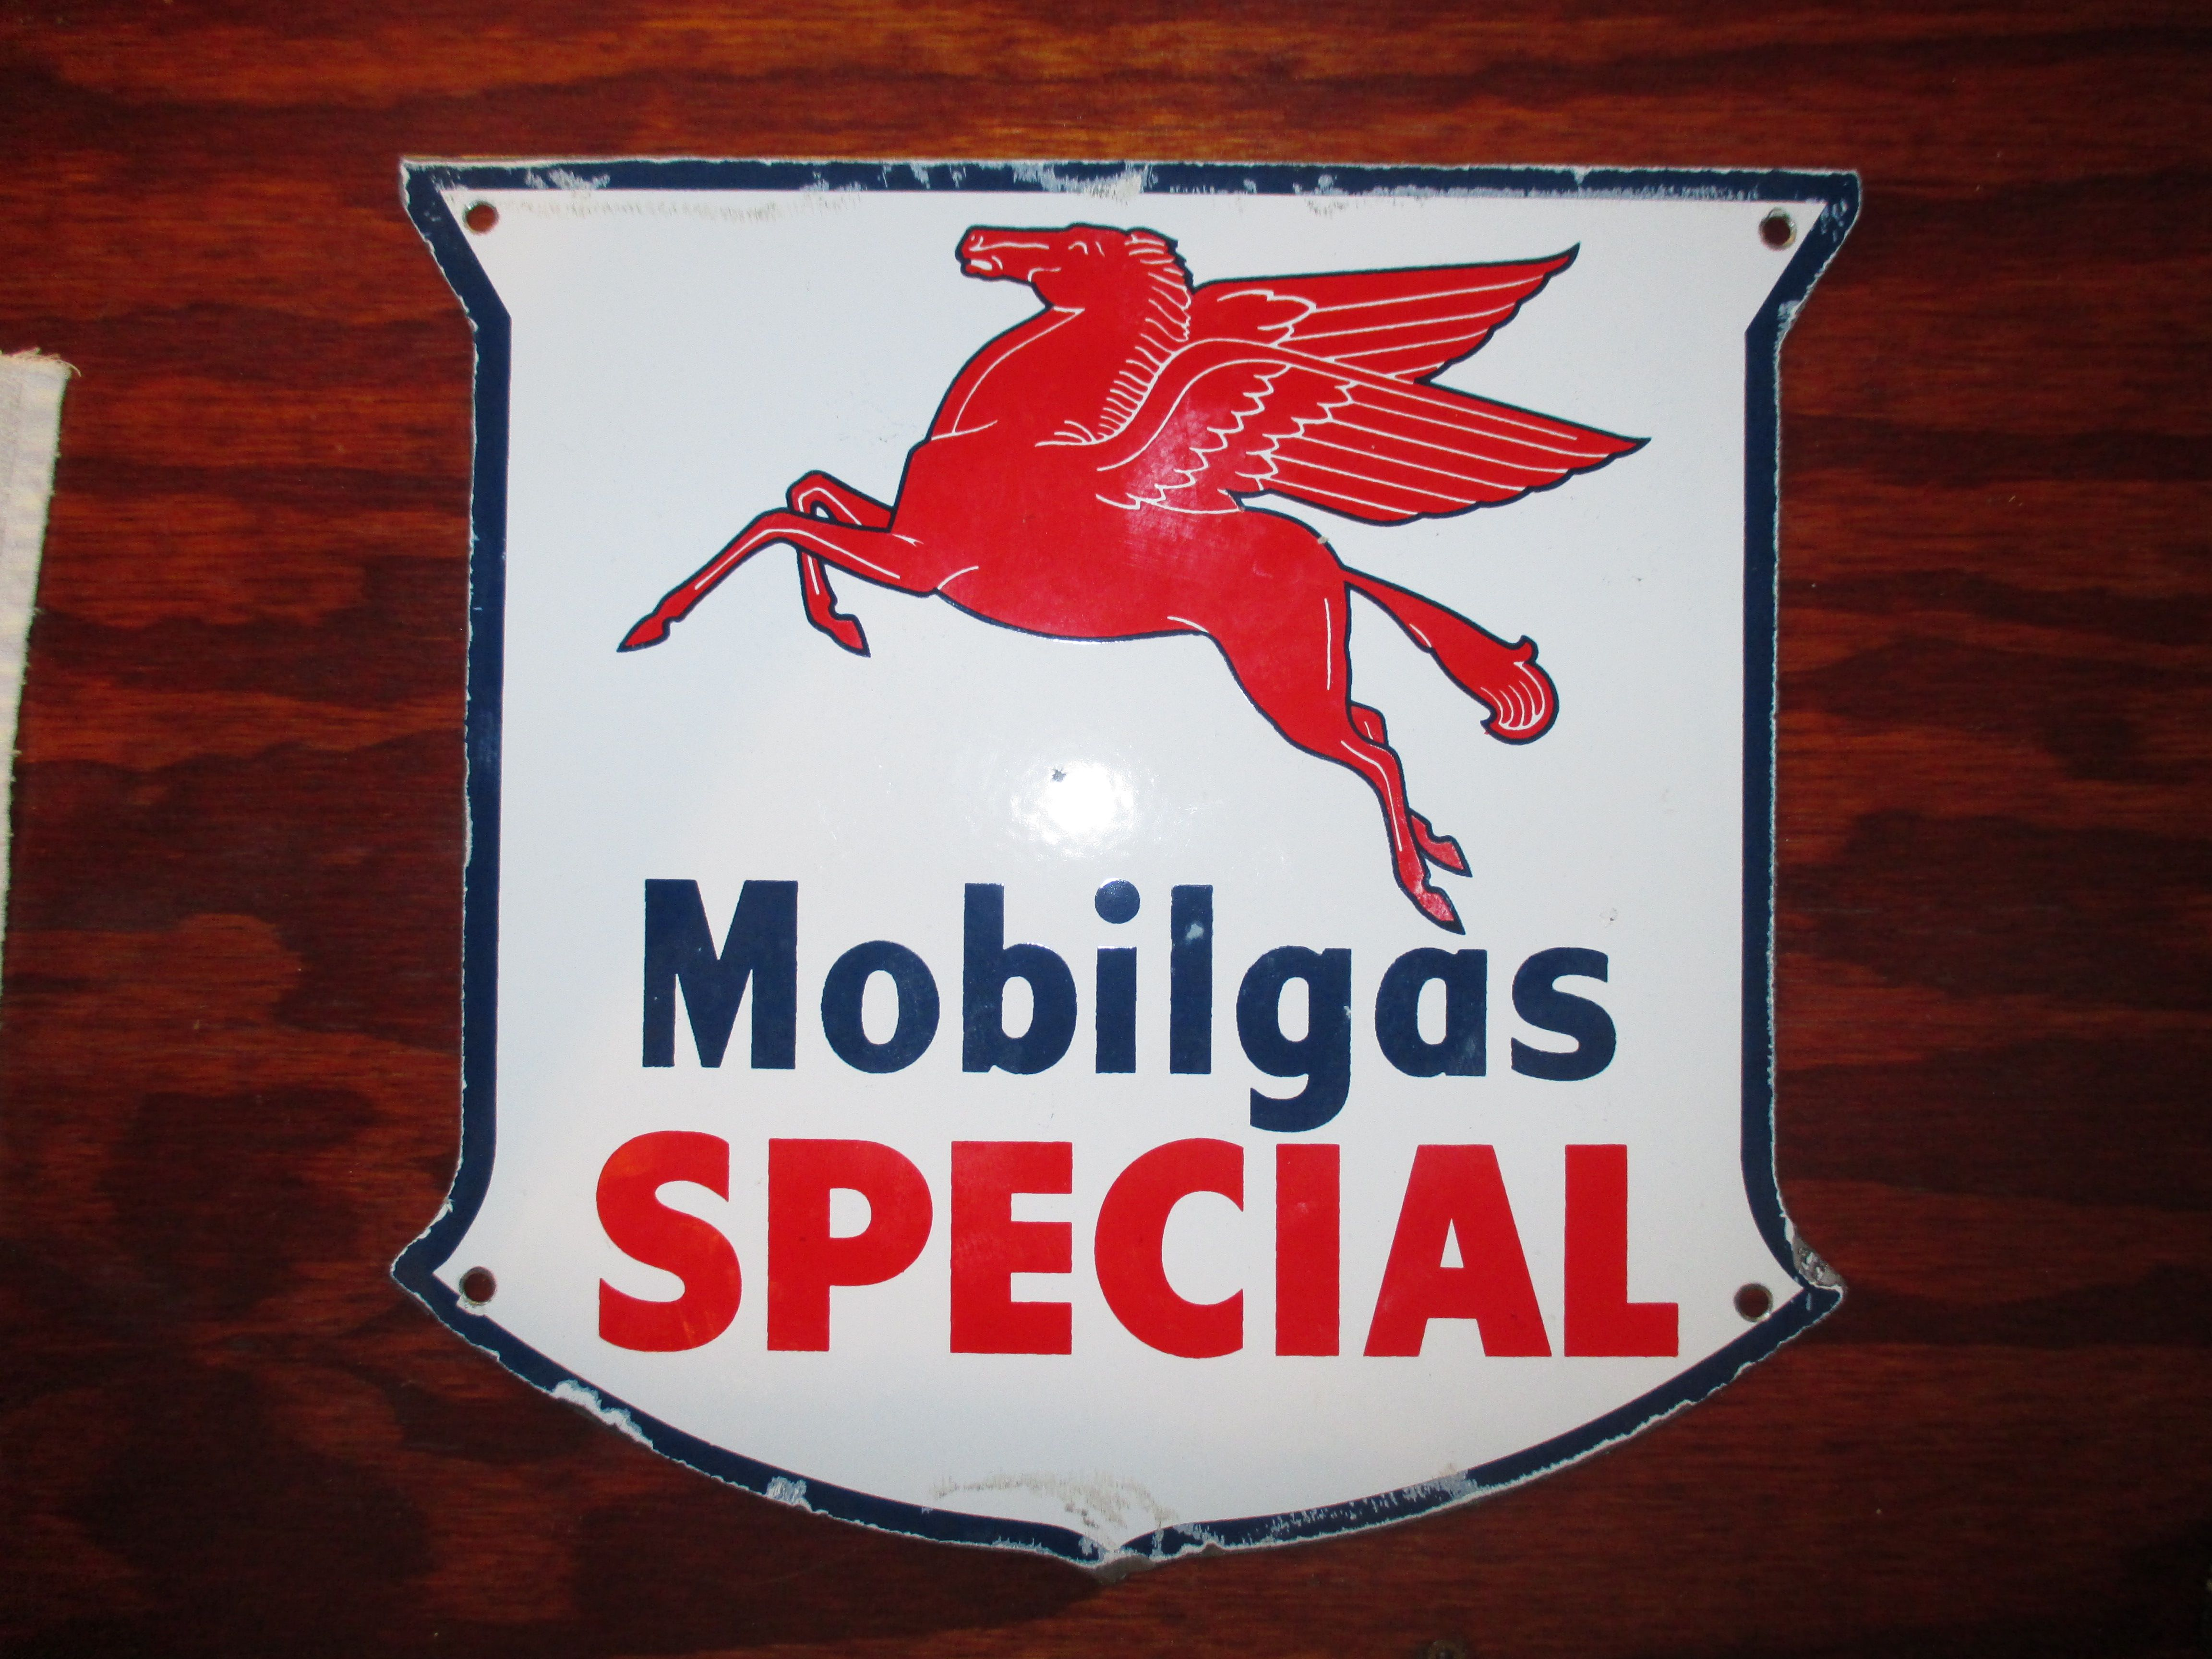 Mobilegas Special Single Sided Porcelain Pump Plate Sign Circa 1950 S Porcelain Signs Painted Signs Vintage Signs